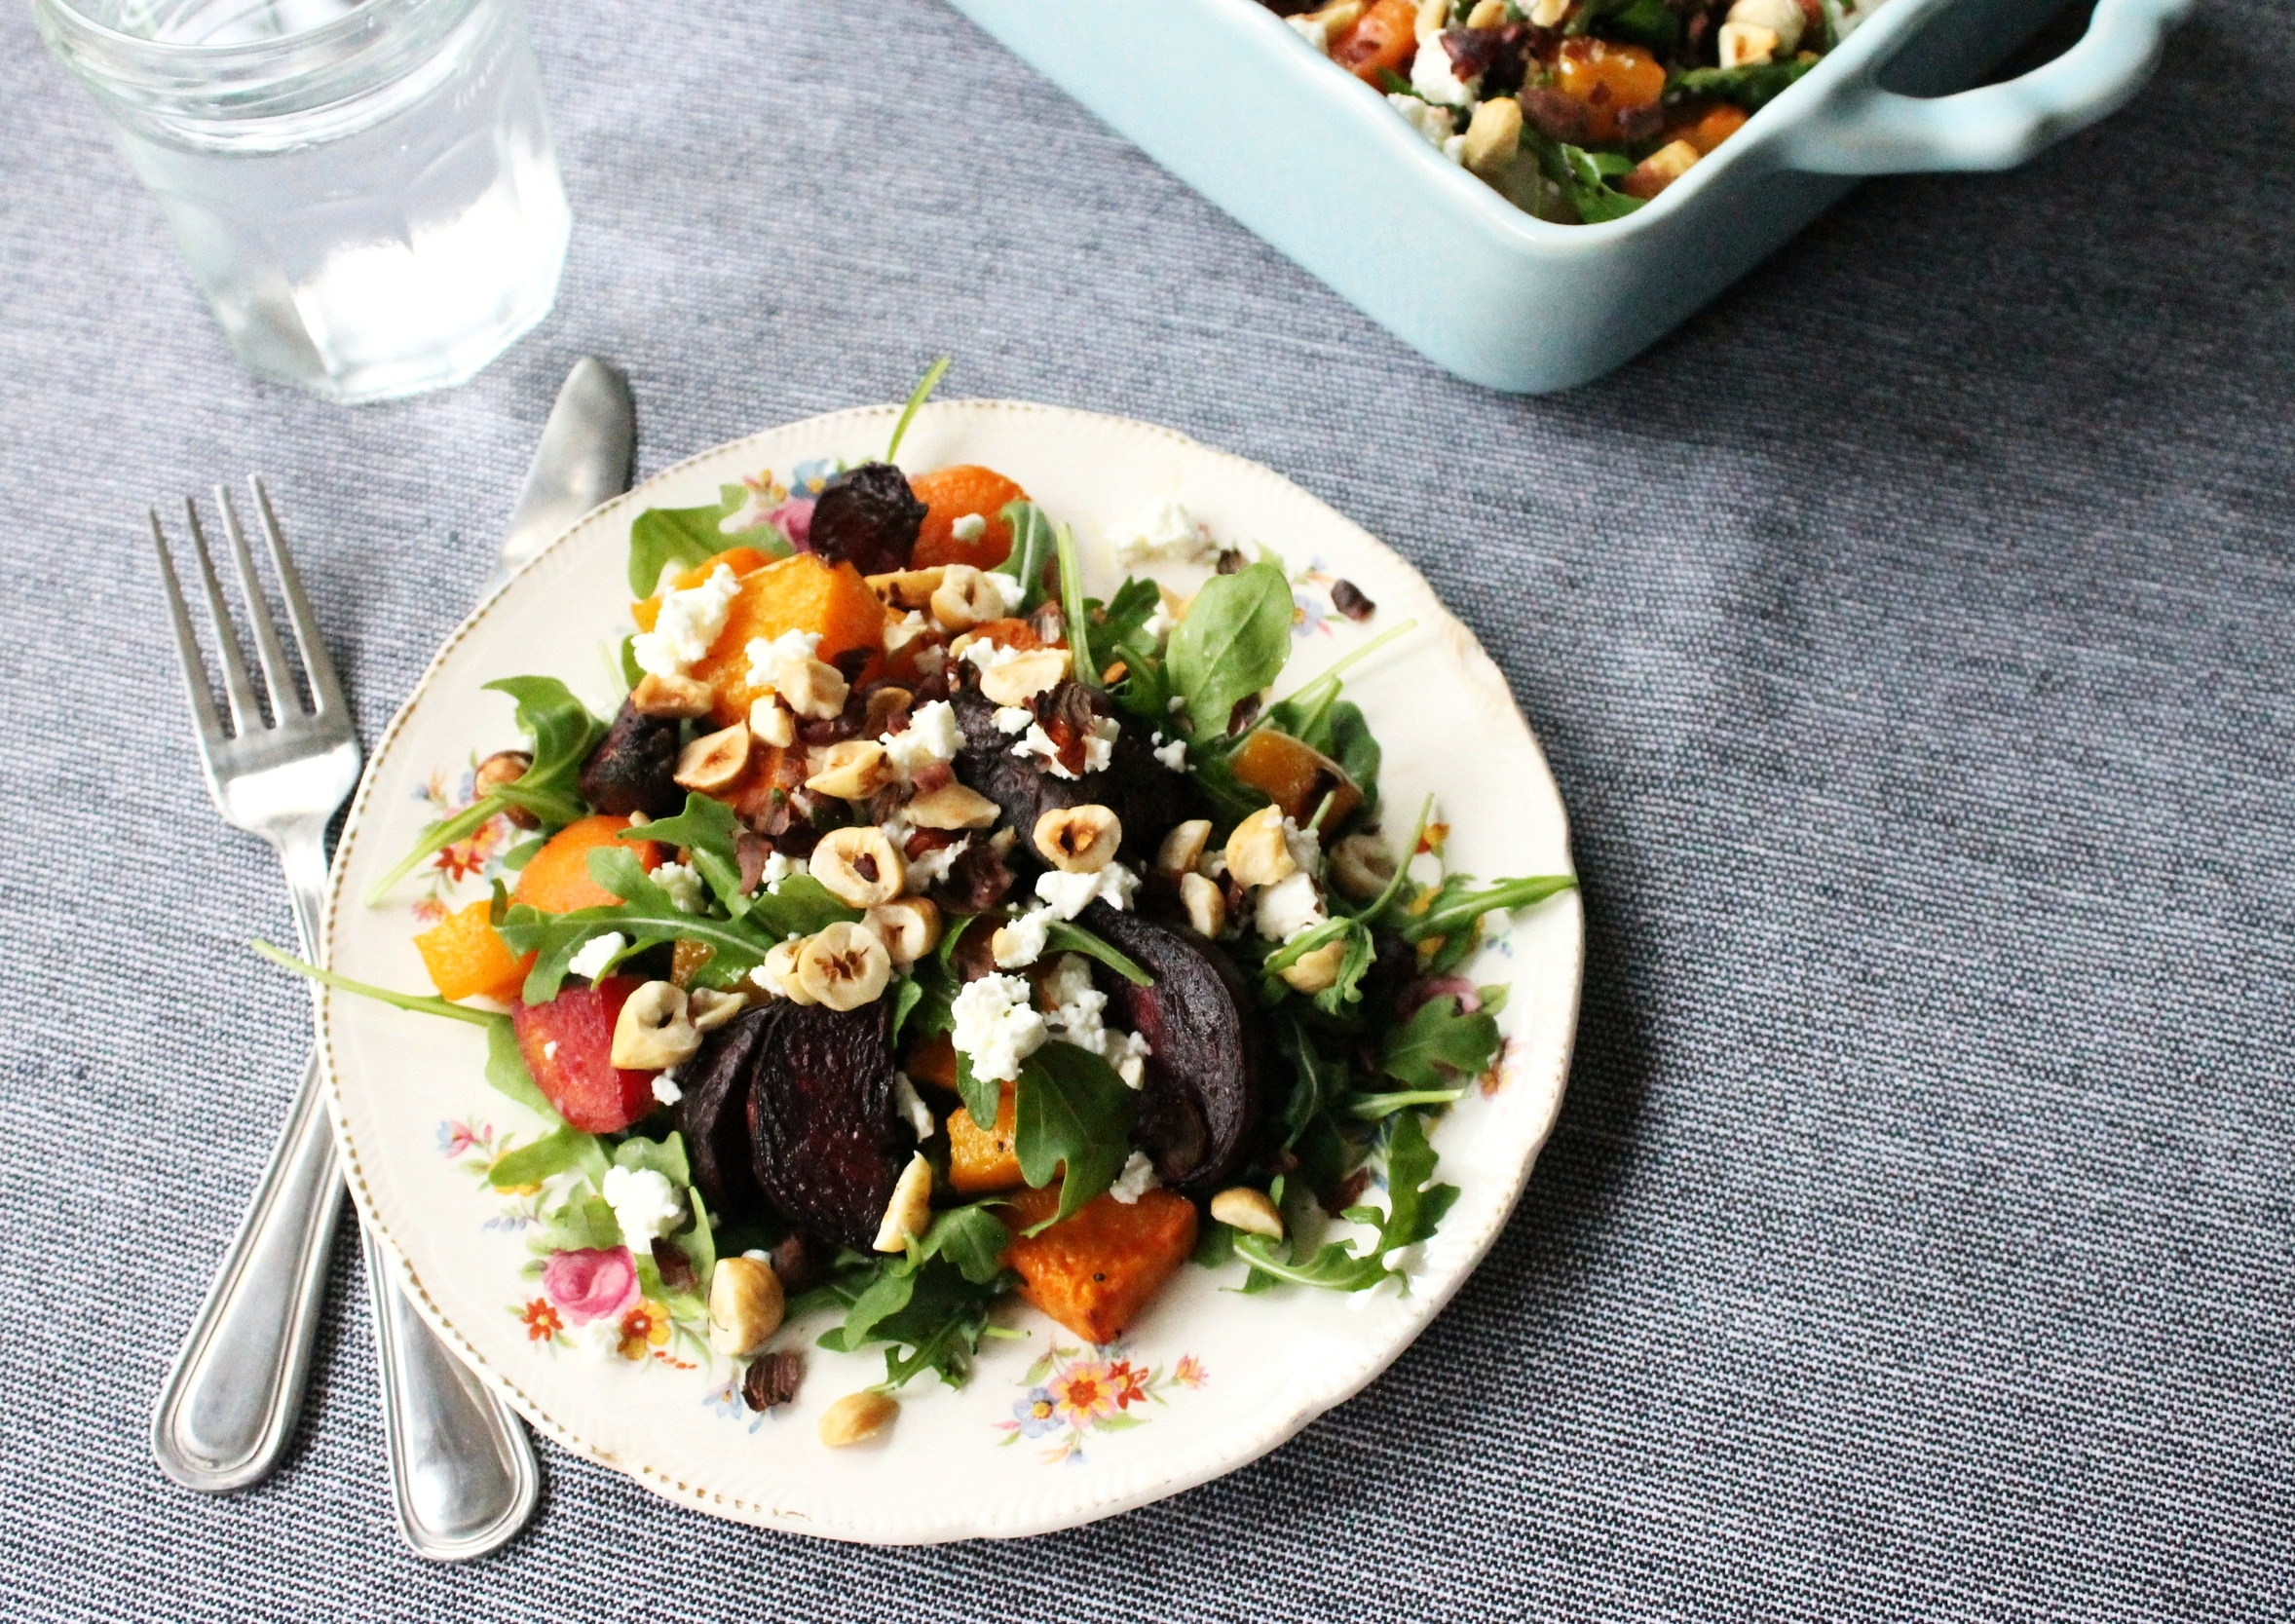 Roasted fall vegetable salad with hazelnuts and chevre | Beloved Kitchen